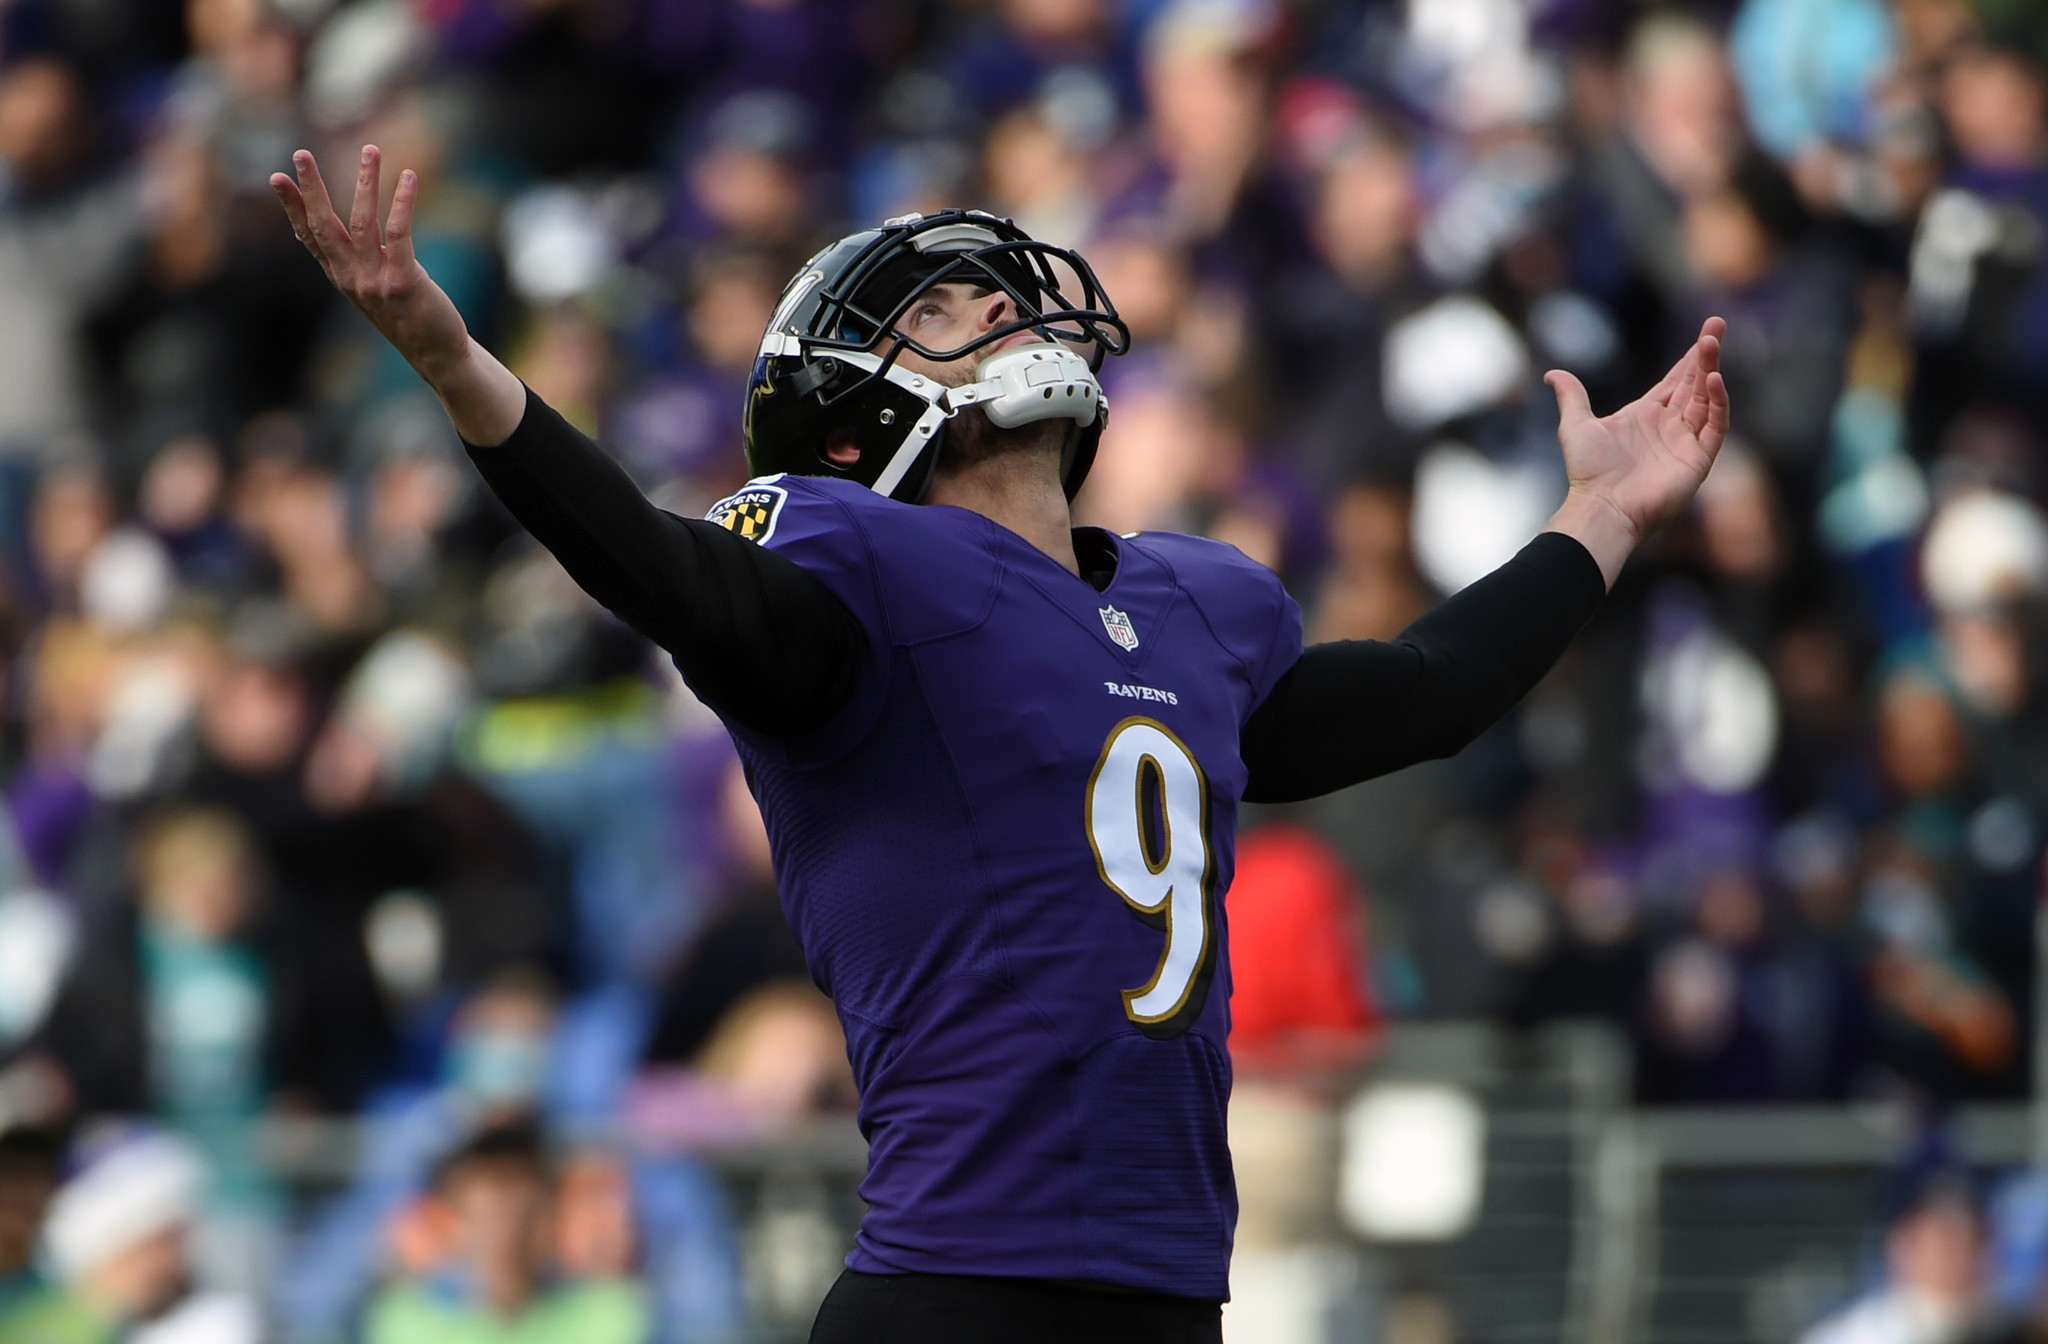 Bal-ravens-news-notes-and-opinions-20161205